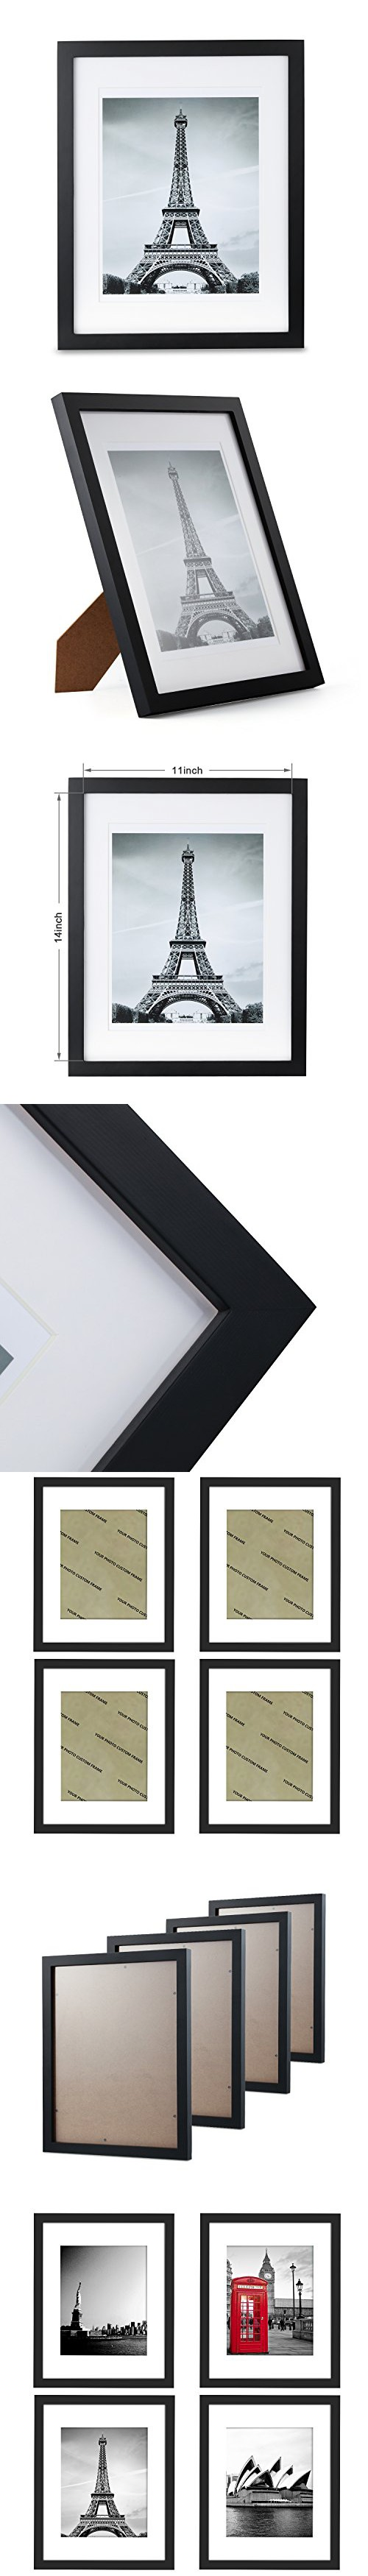 4Pcs 11x14 Picture Frames Black, Wood Instagram Photo Frames with 3 ...